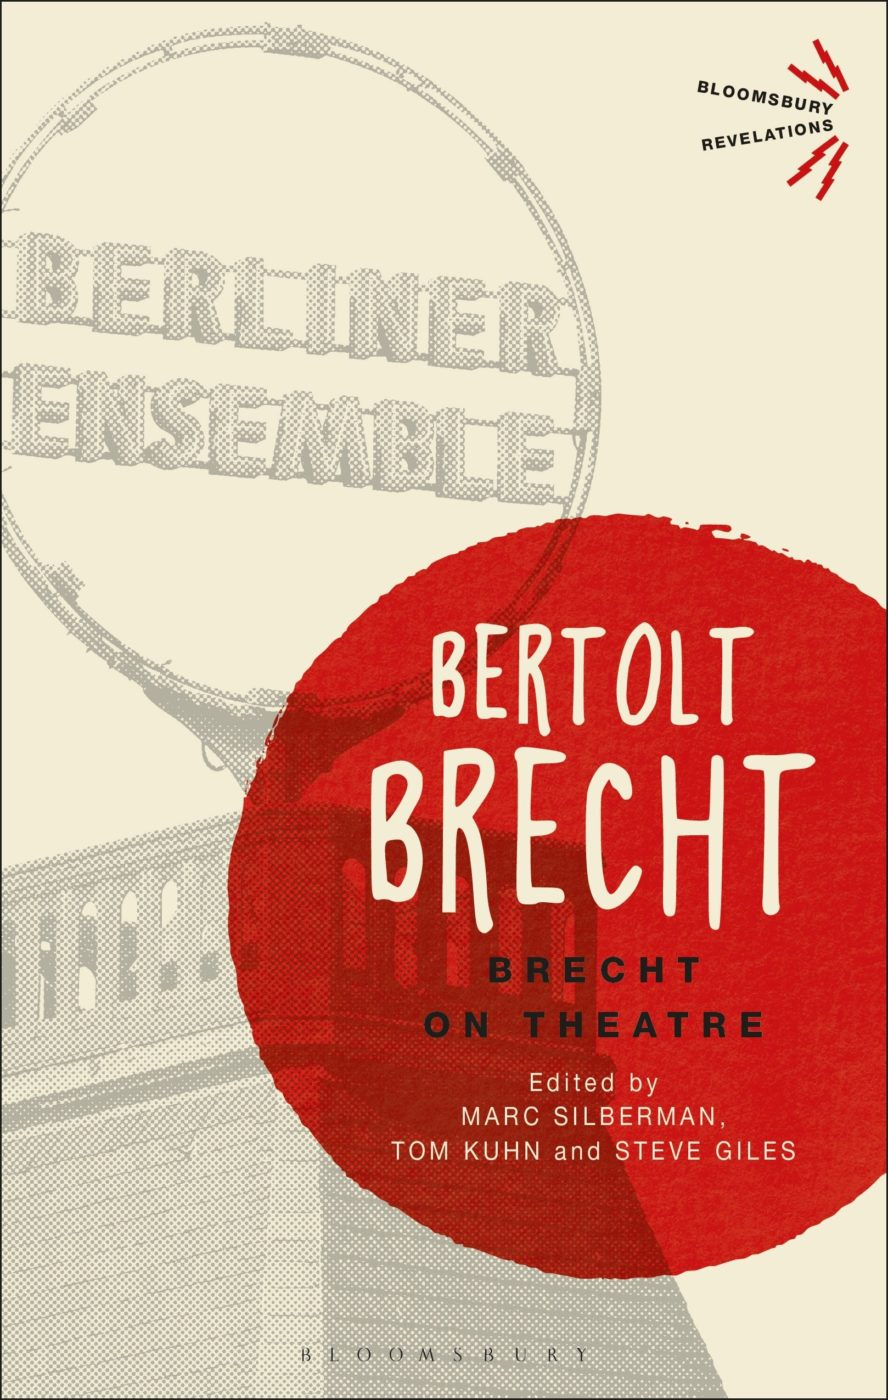 brecht on theater cover